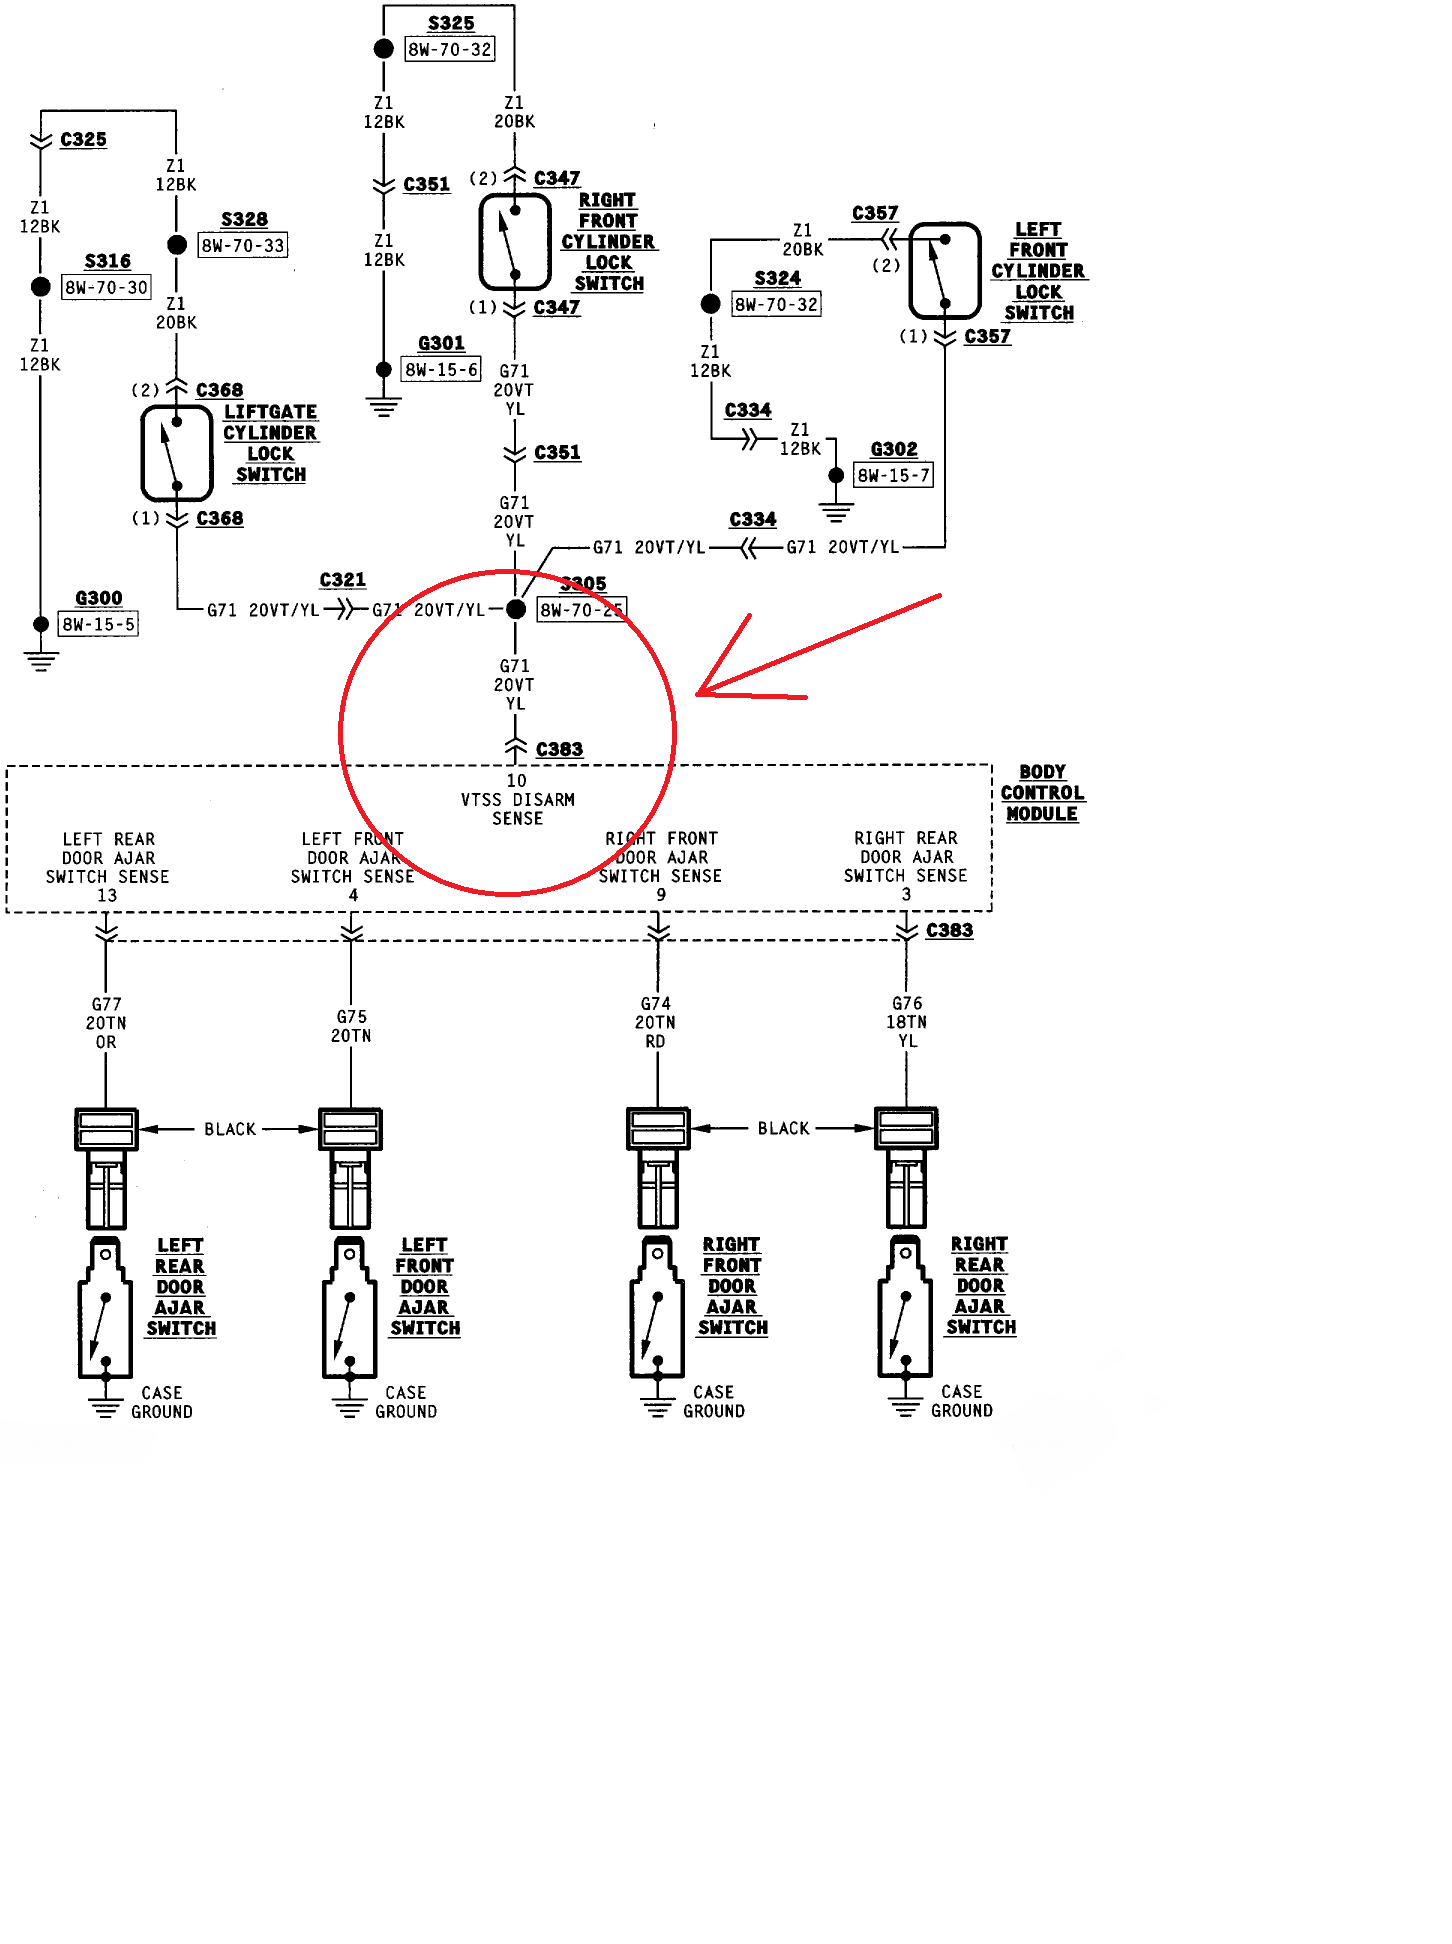 1996 jeep cherokee ignition switch wiring diagram 1996 1996 jeep grand cherokee ignition switch wiring diagram wiring on 1996 jeep cherokee ignition switch wiring